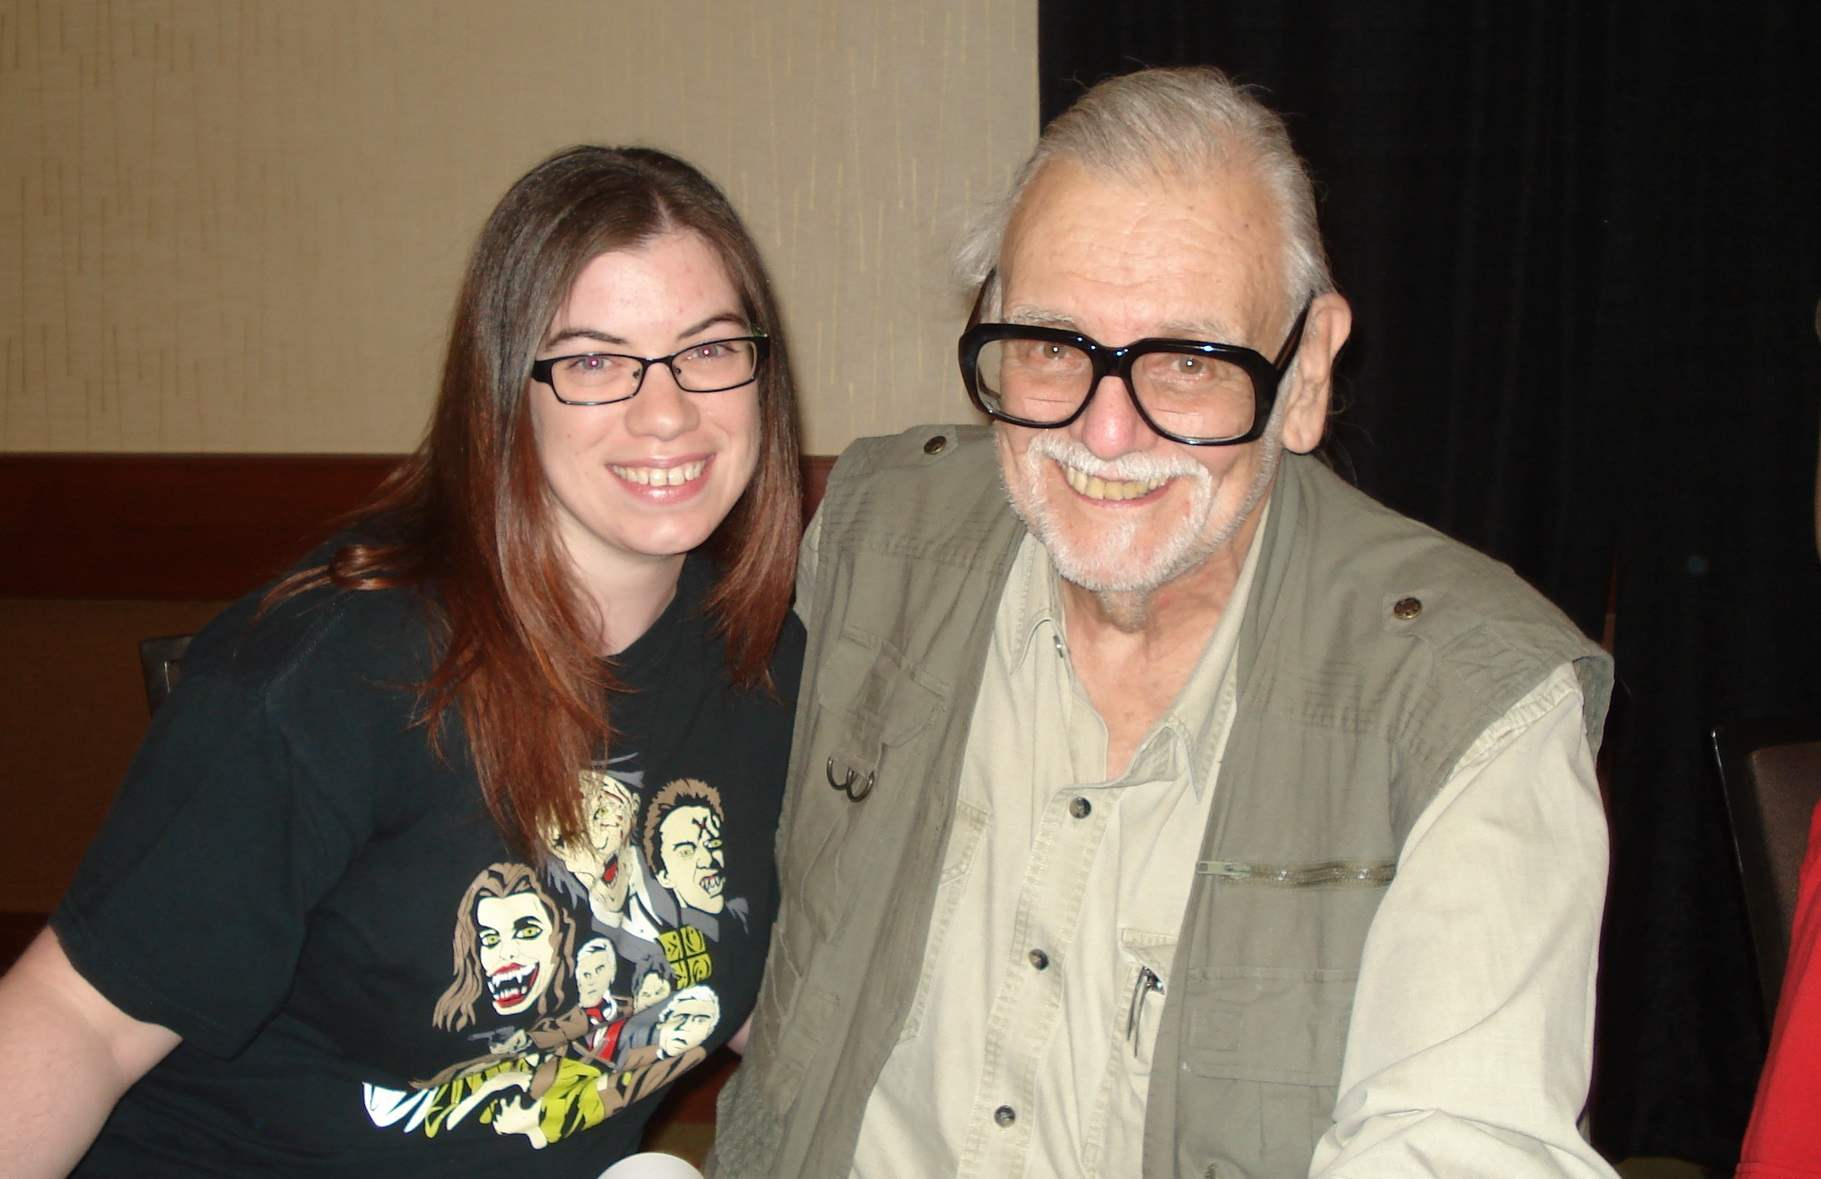 Fan picture with George Romero